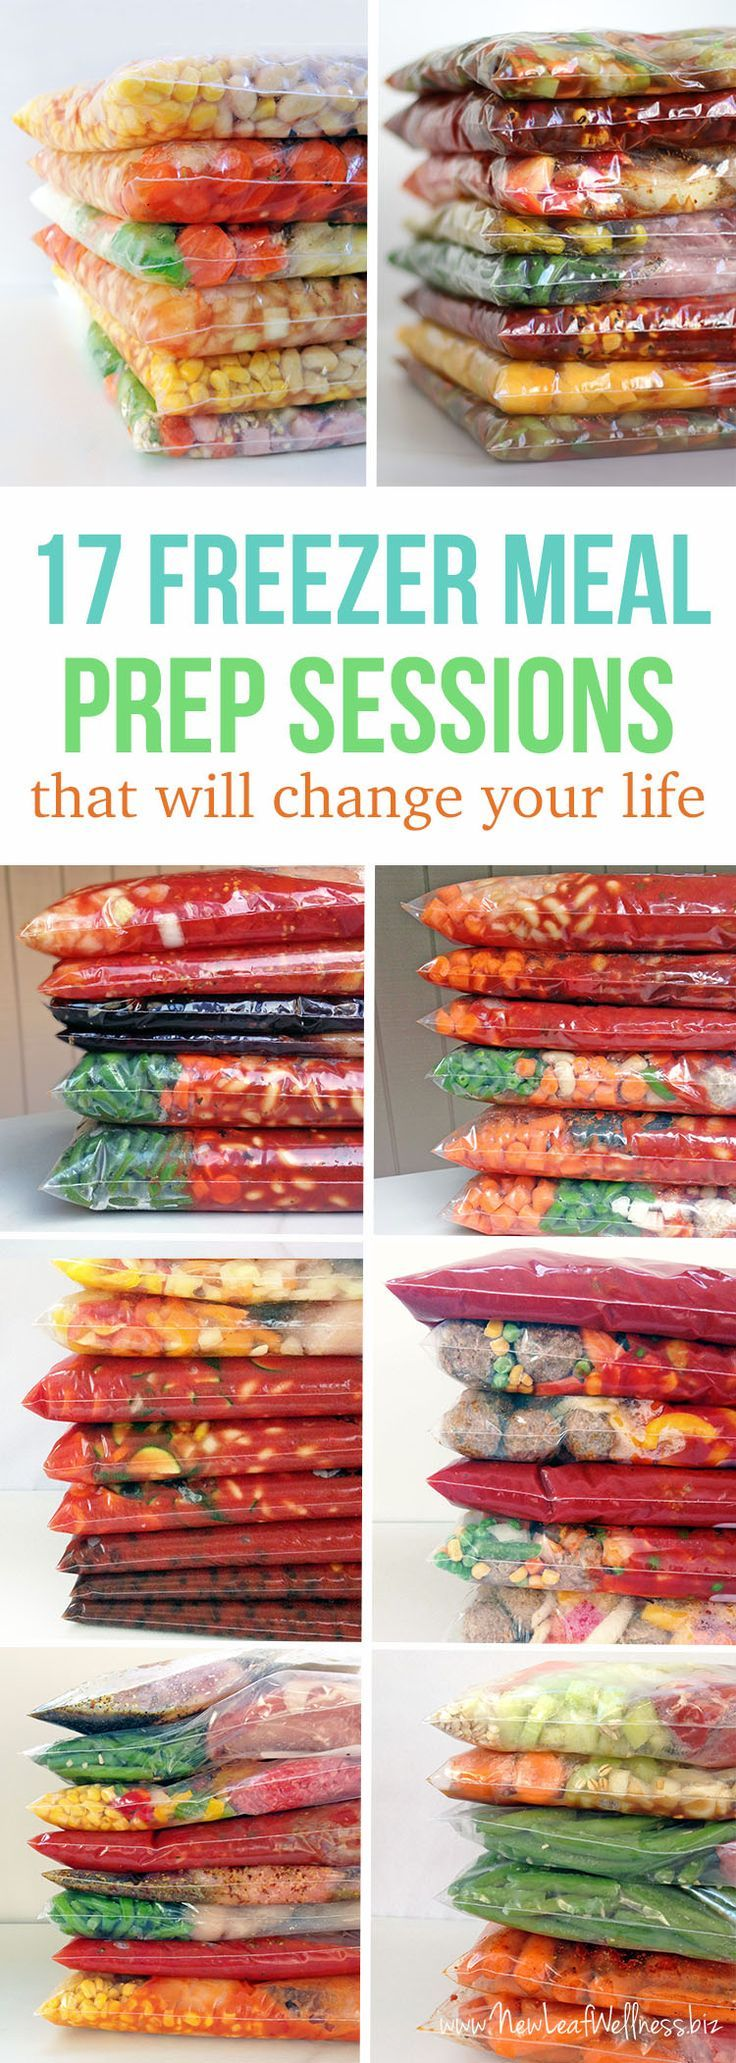 17 Freezer Meal Prep Ideas For Crazy Busy People #healthy #quick #kitchenhack